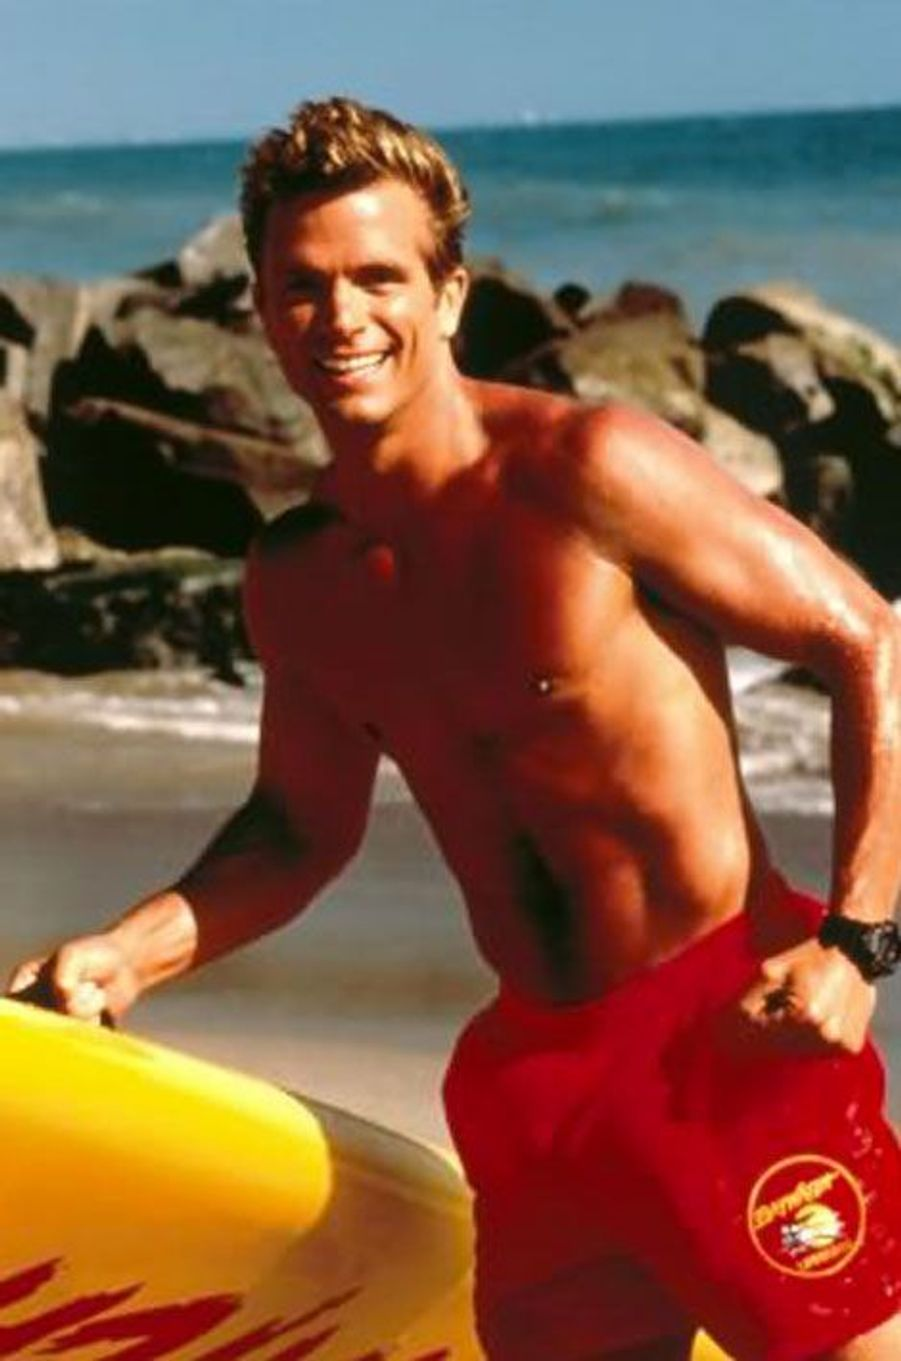 David Chokachi (Cody Madison)